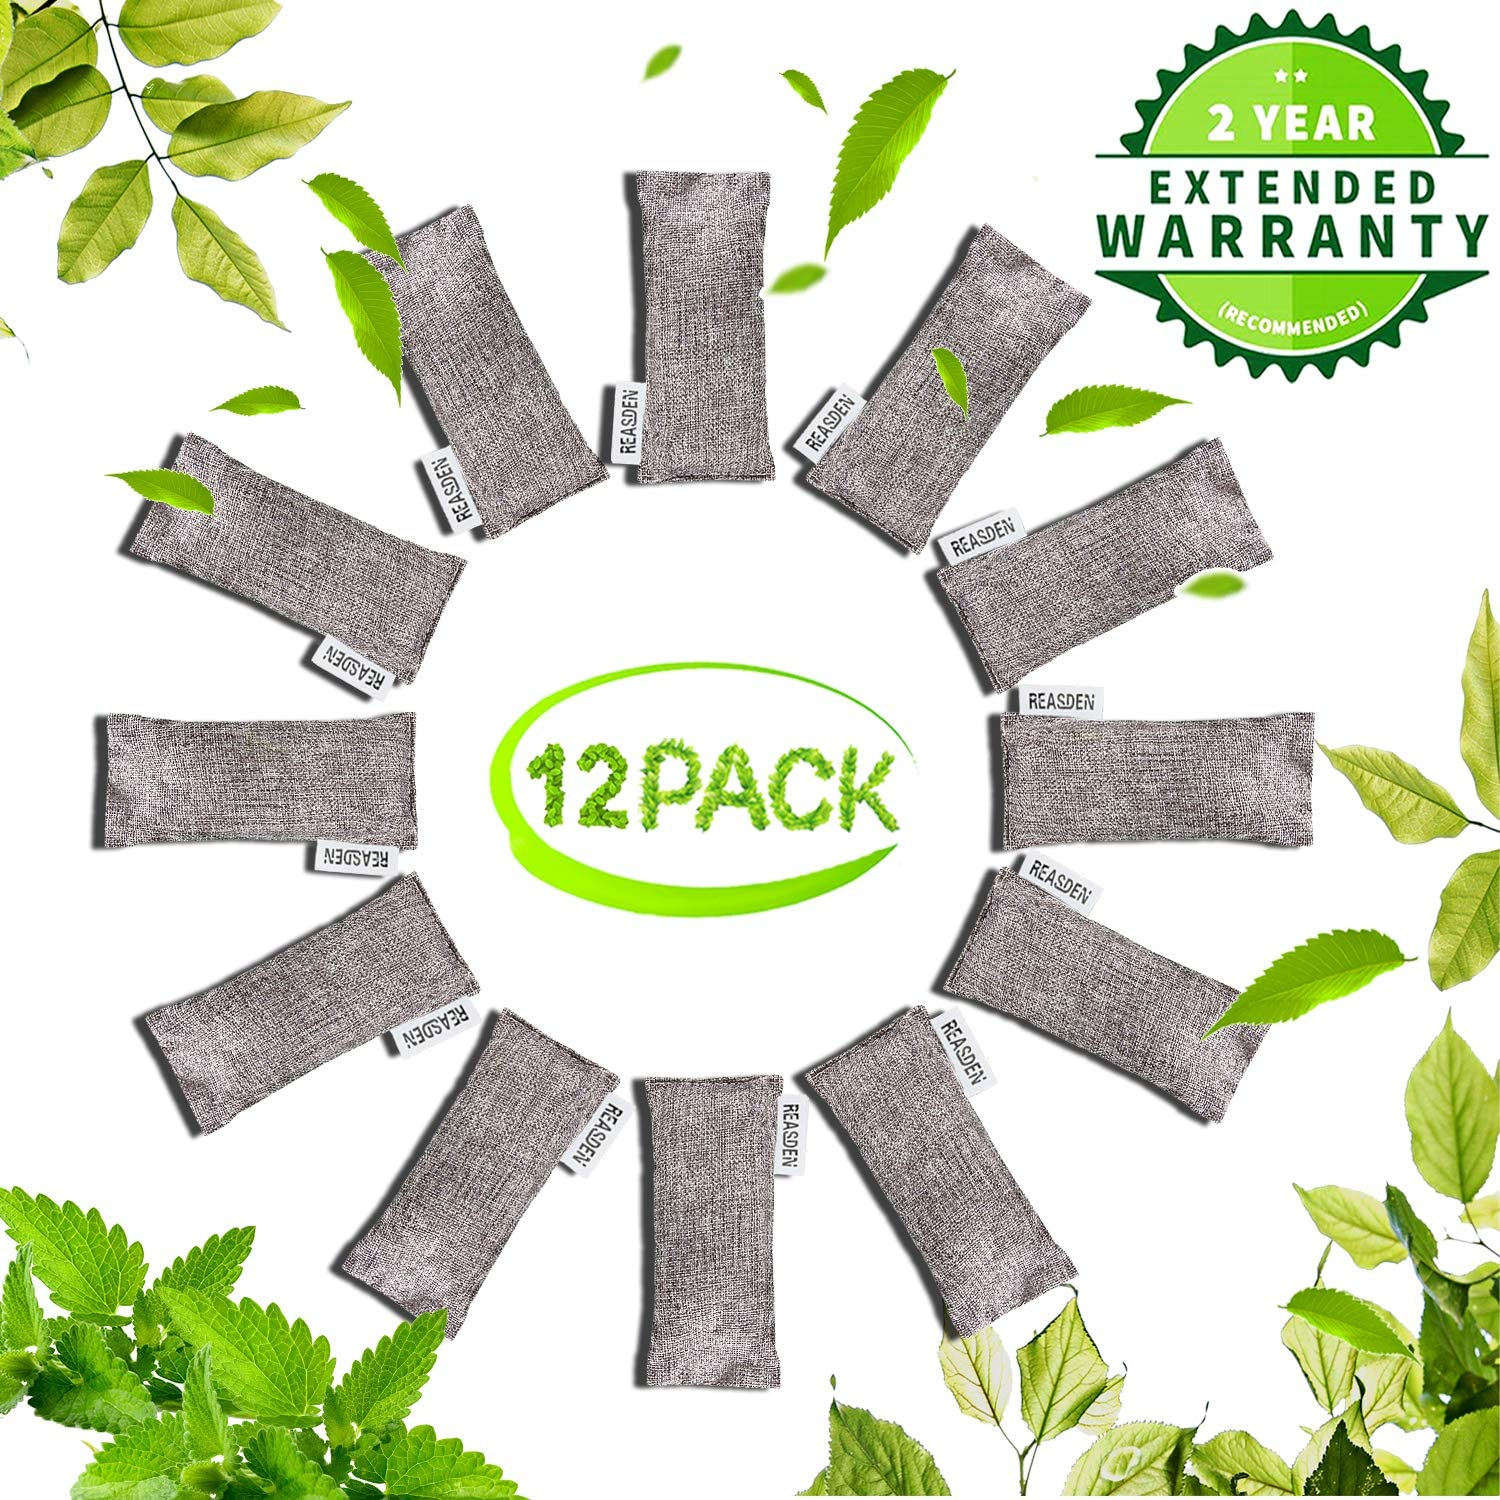 REASDEN Air Purifier Bag Bamboo Charcoal Bag Charcoal Air Purifying Activated Bags Dry Activated Charcoal Odor Absorber Captures and Eliminates Odors(12 Pack X 75g)